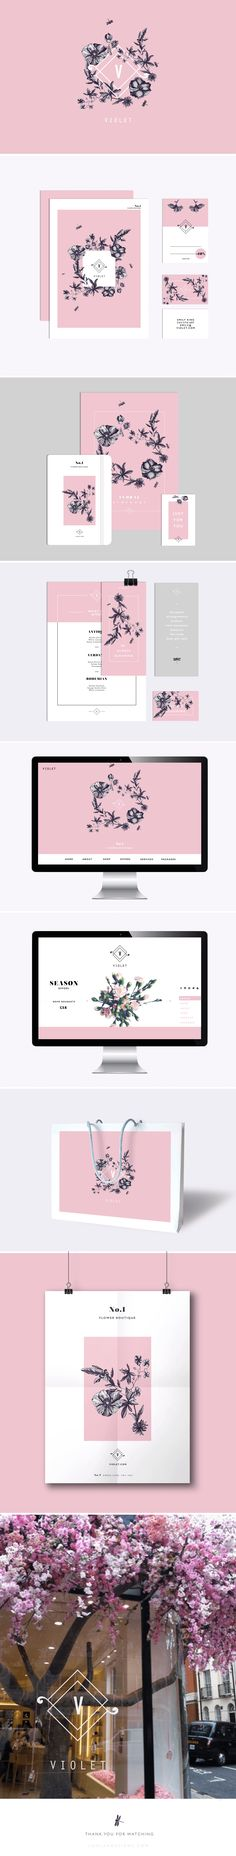 Branding and logo design / hand drawn boho flowers + pink + grey